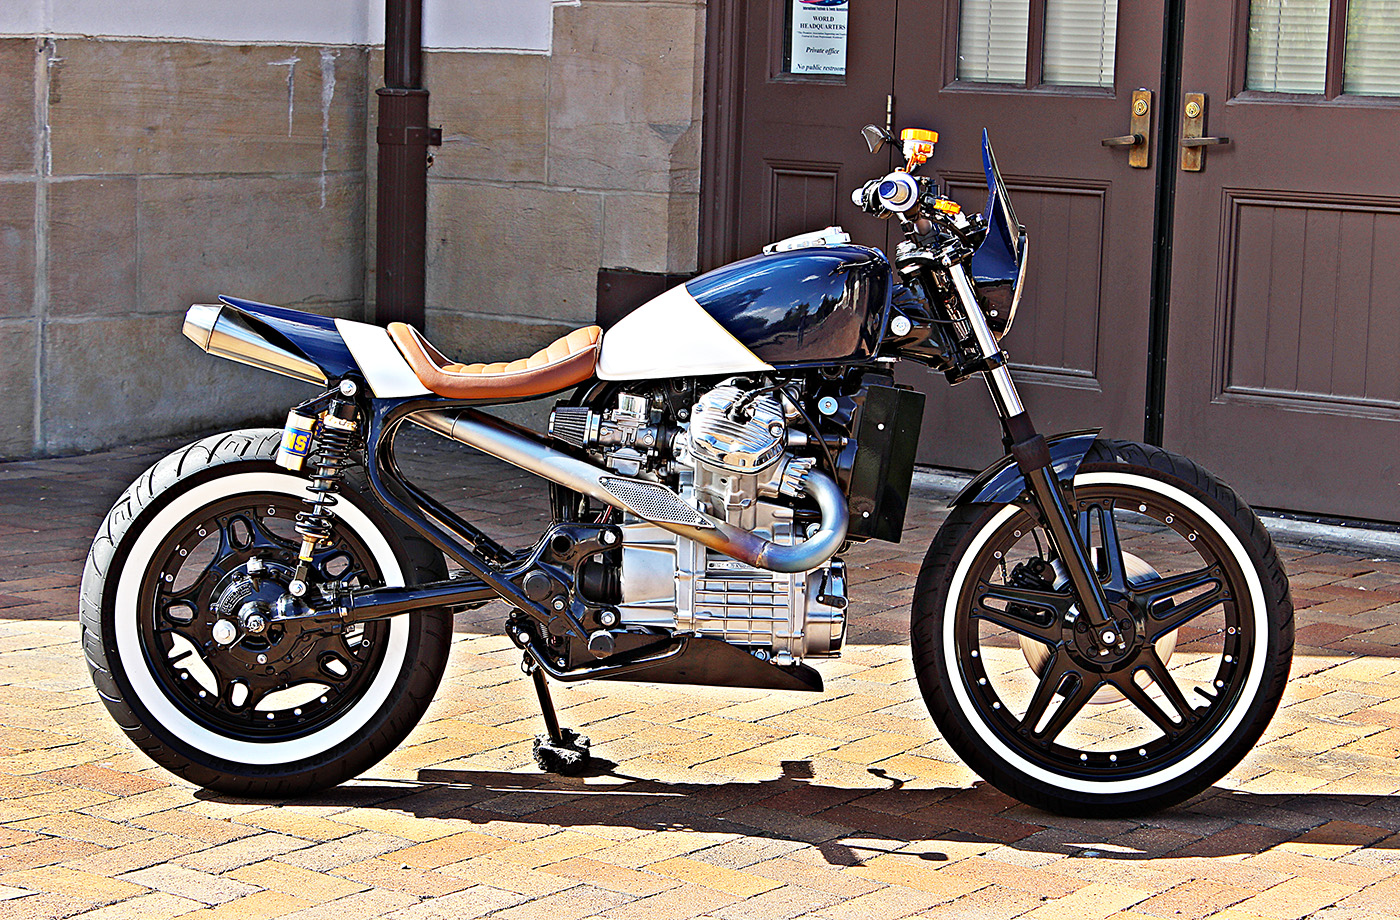 jmr customs builds amazing honda cx500 racer autoevolution. Black Bedroom Furniture Sets. Home Design Ideas